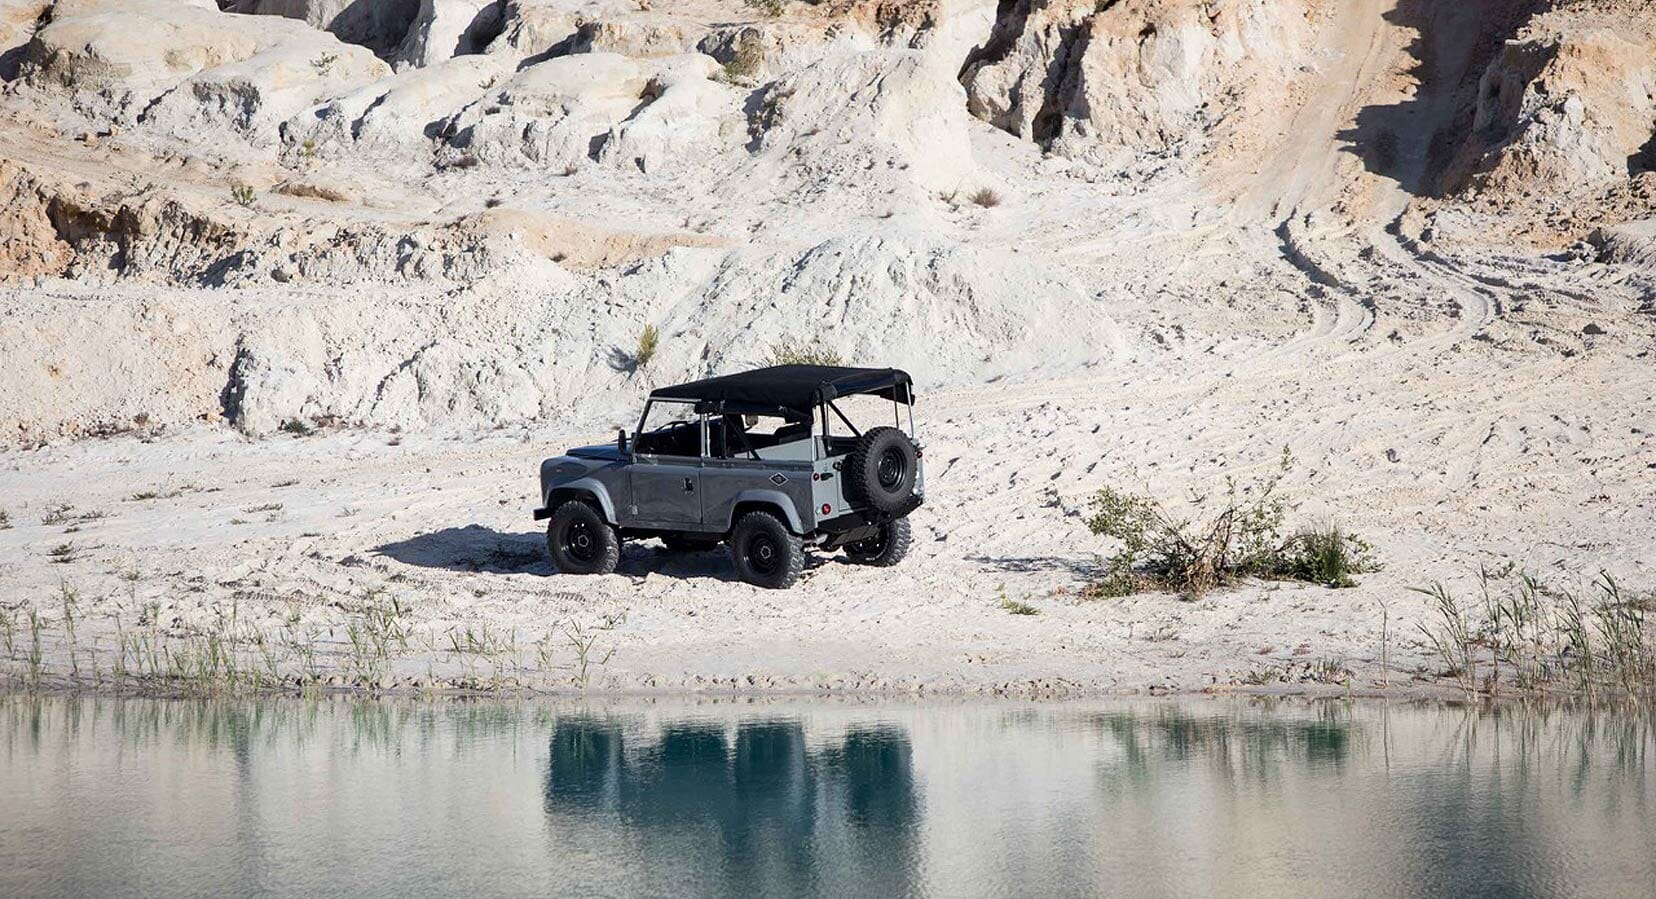 CoolnVintage Return With This Spectacular Land Rover D90